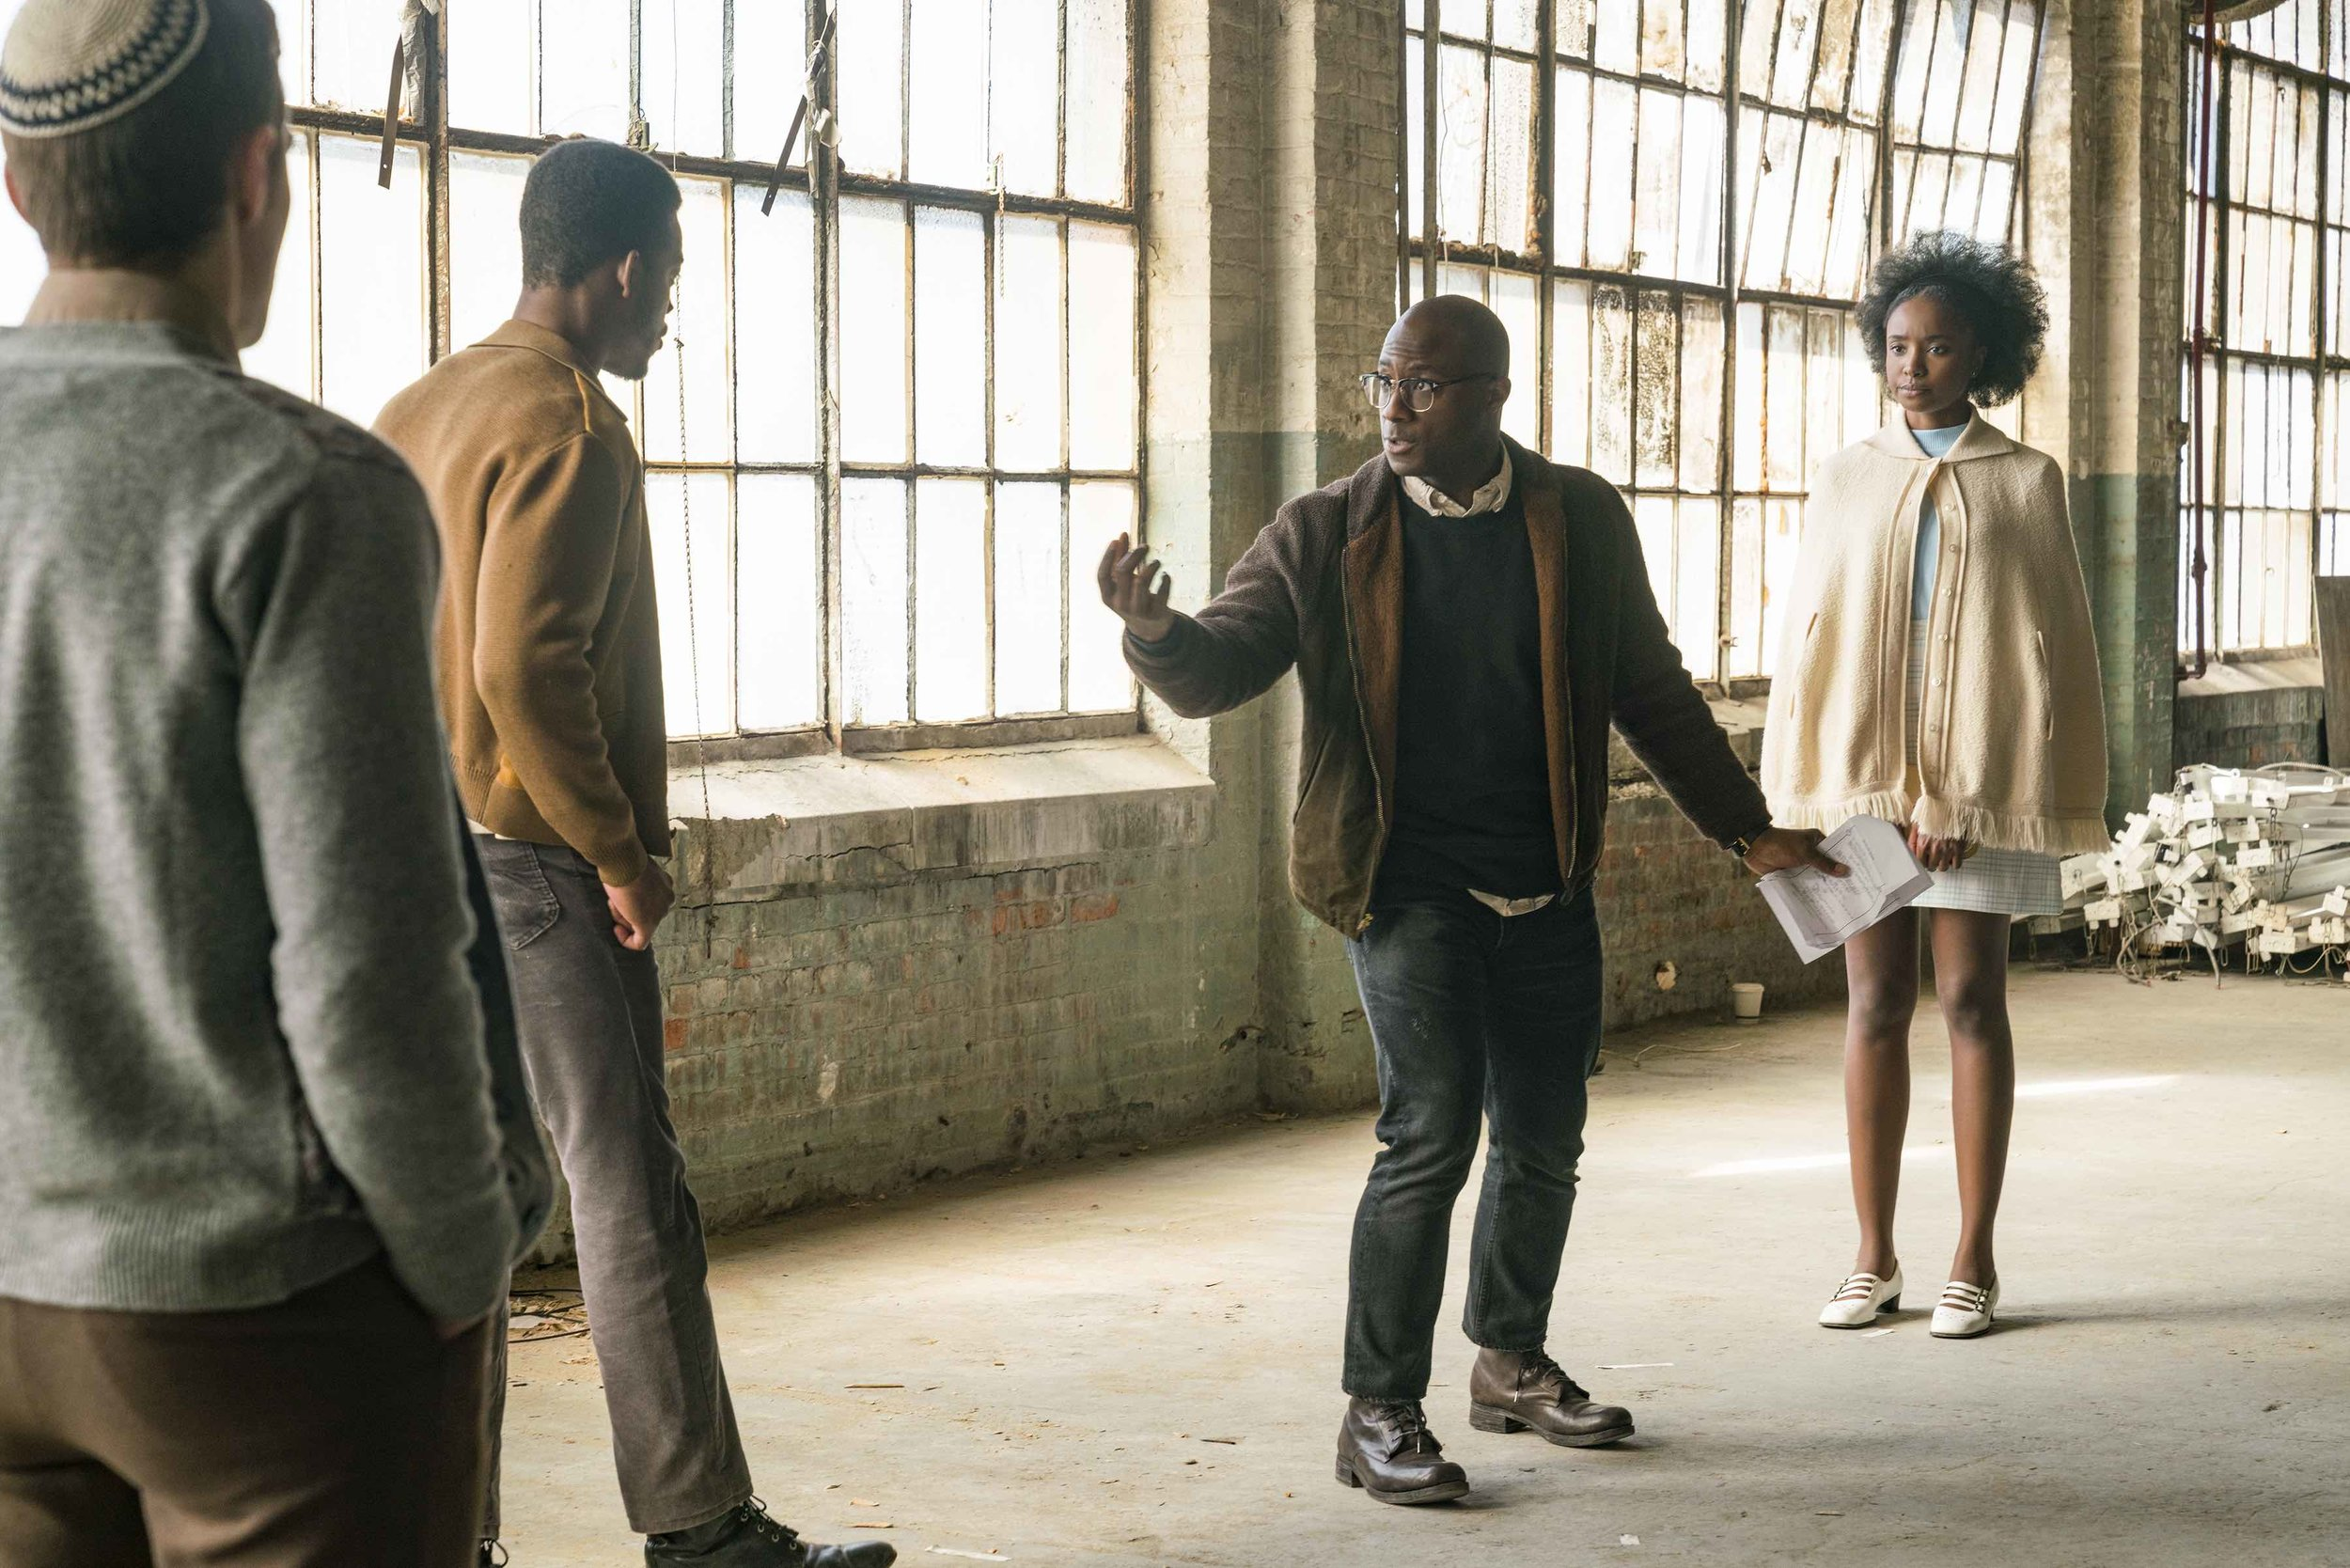 Barry Jenkins, If Beale Street Could Talk - Barry Jenkins is one of the most important filmmakers working today. His intellectual approach to his films is only matched by the aesthetic excellence.